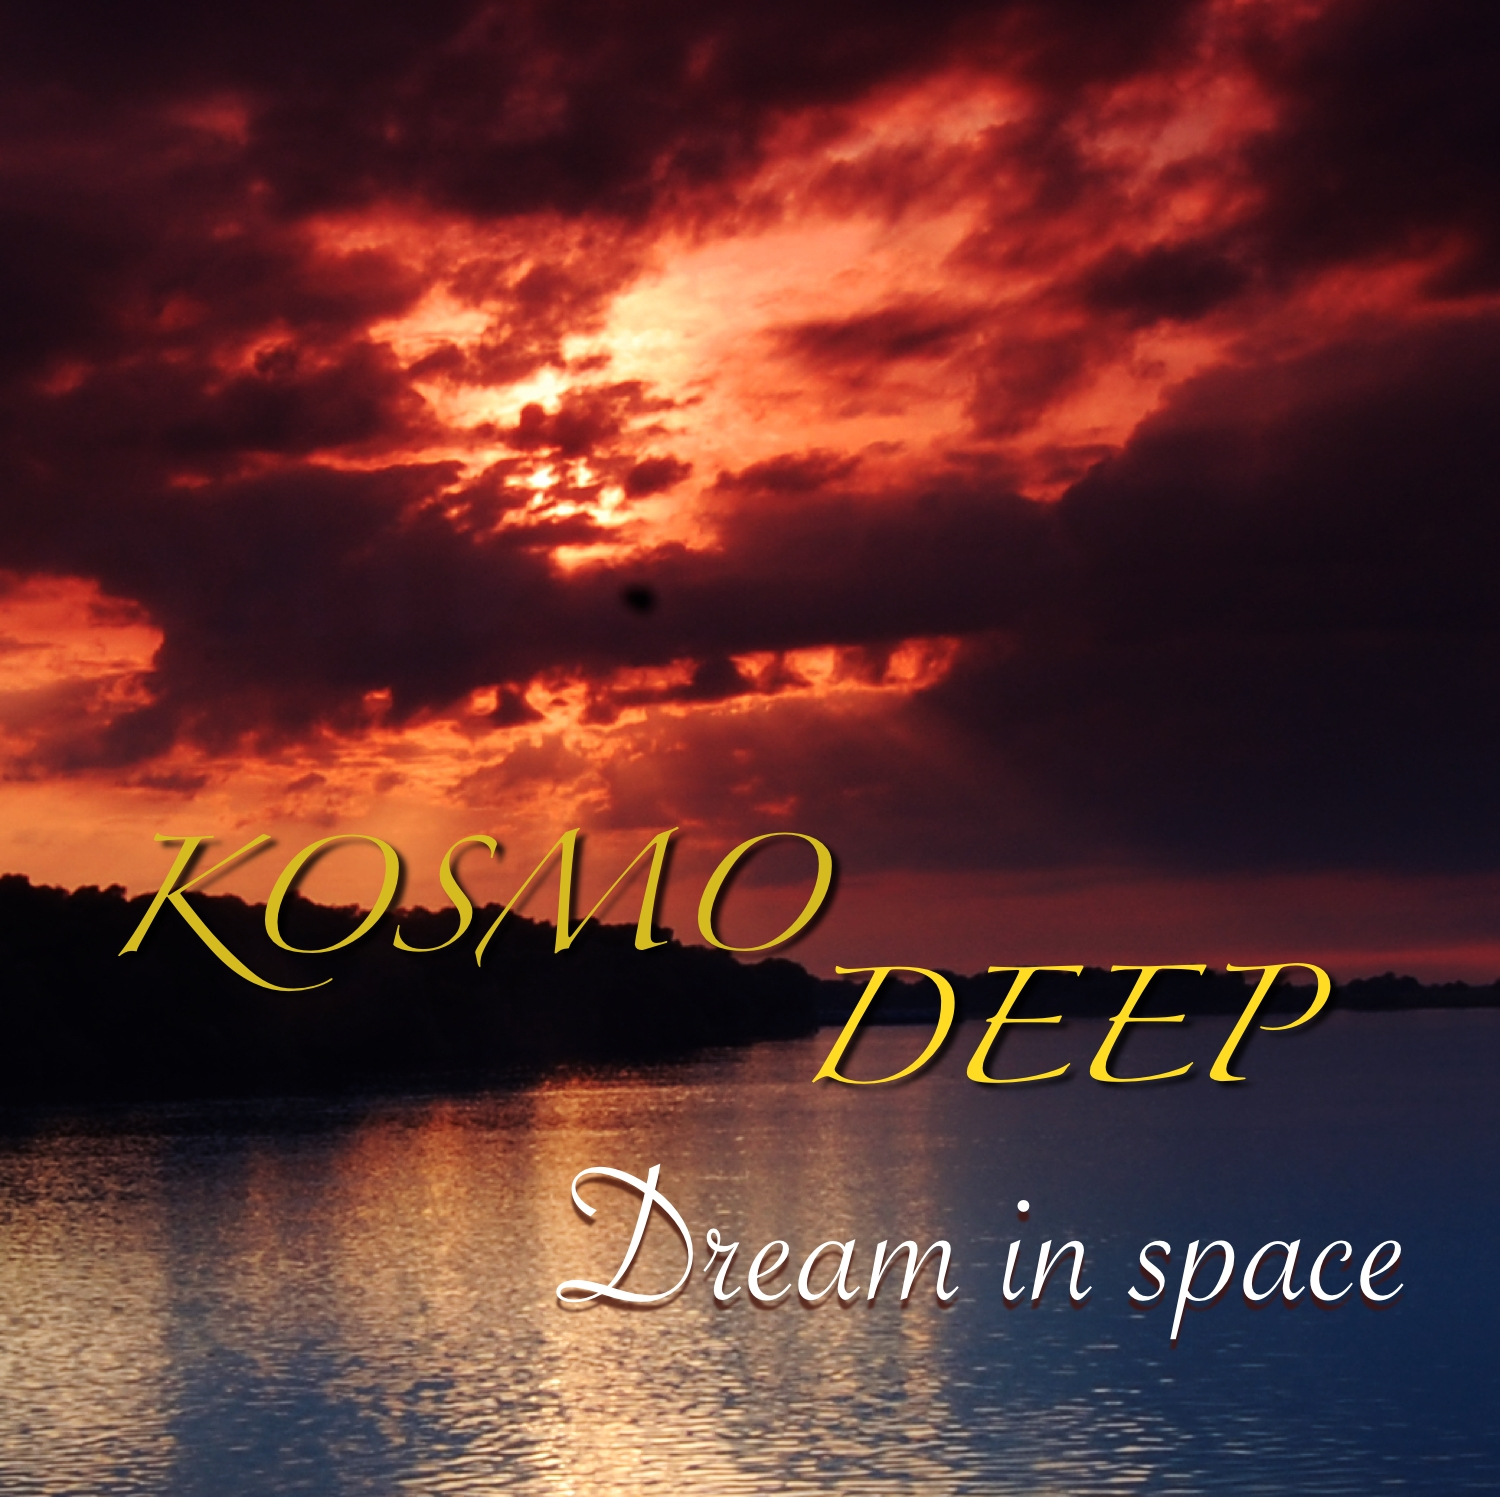 Kosmodeep - Rain in space (Original mix)